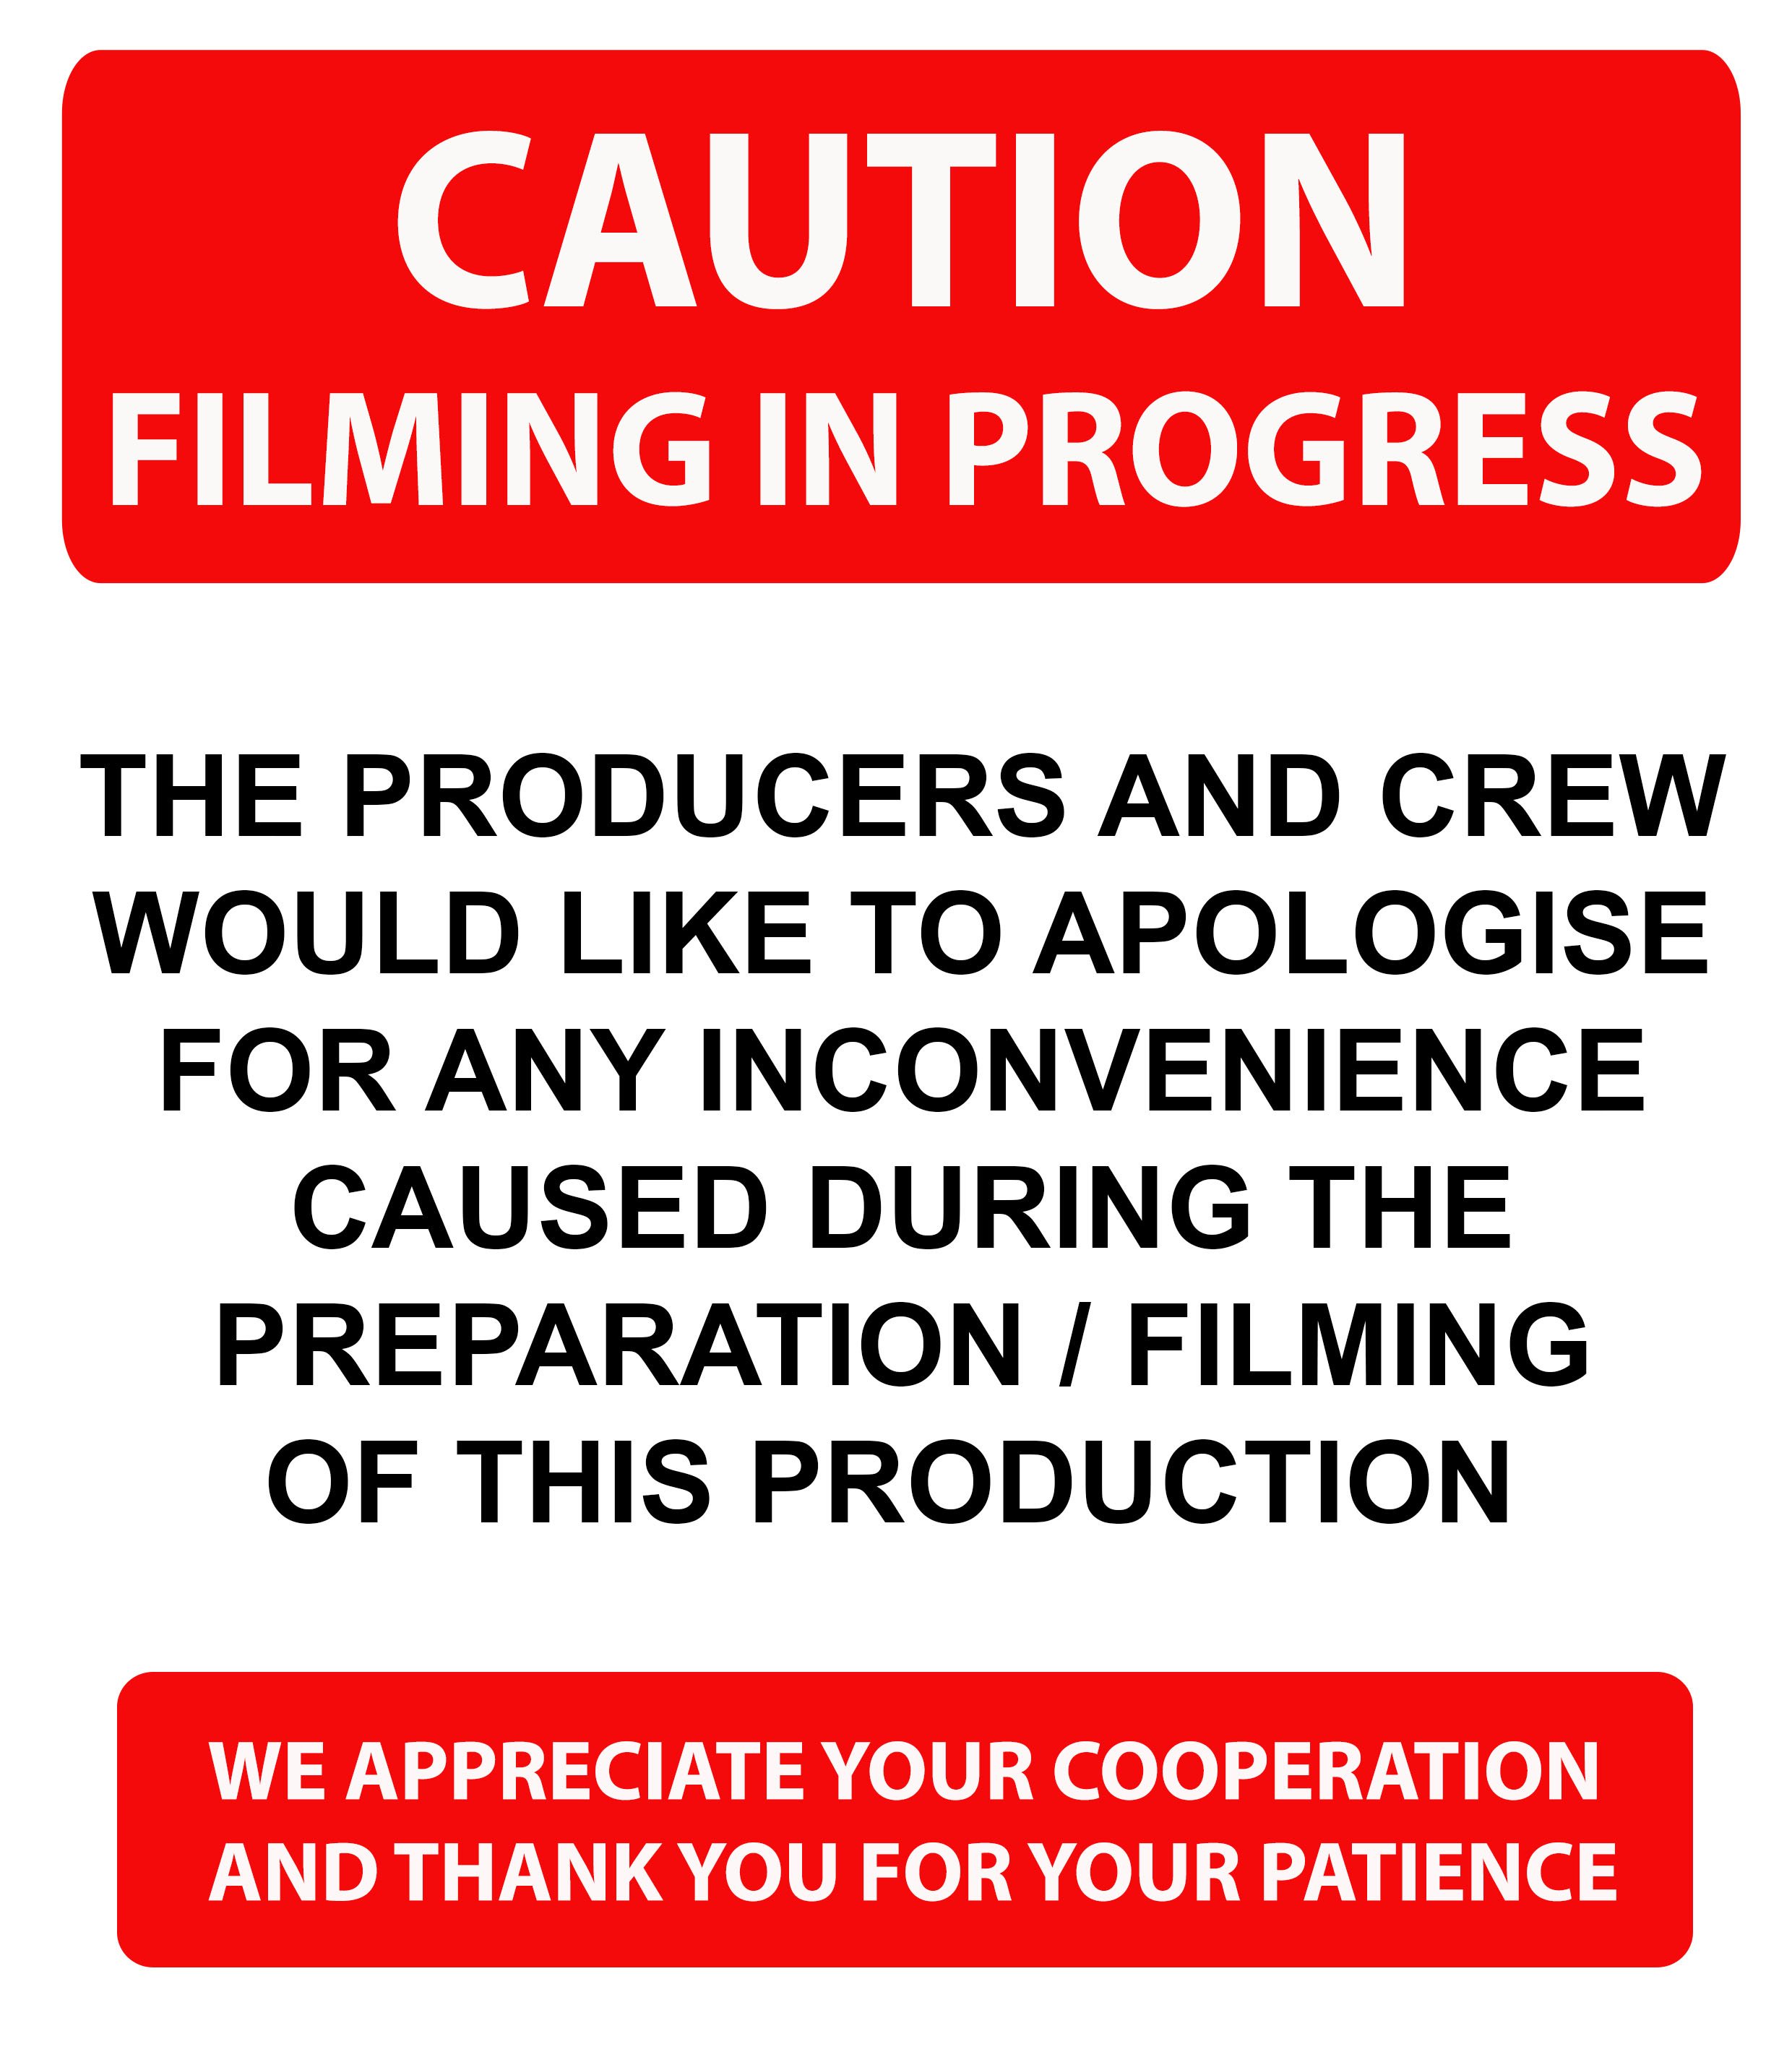 A1 CAUTION FILMING GENERIC